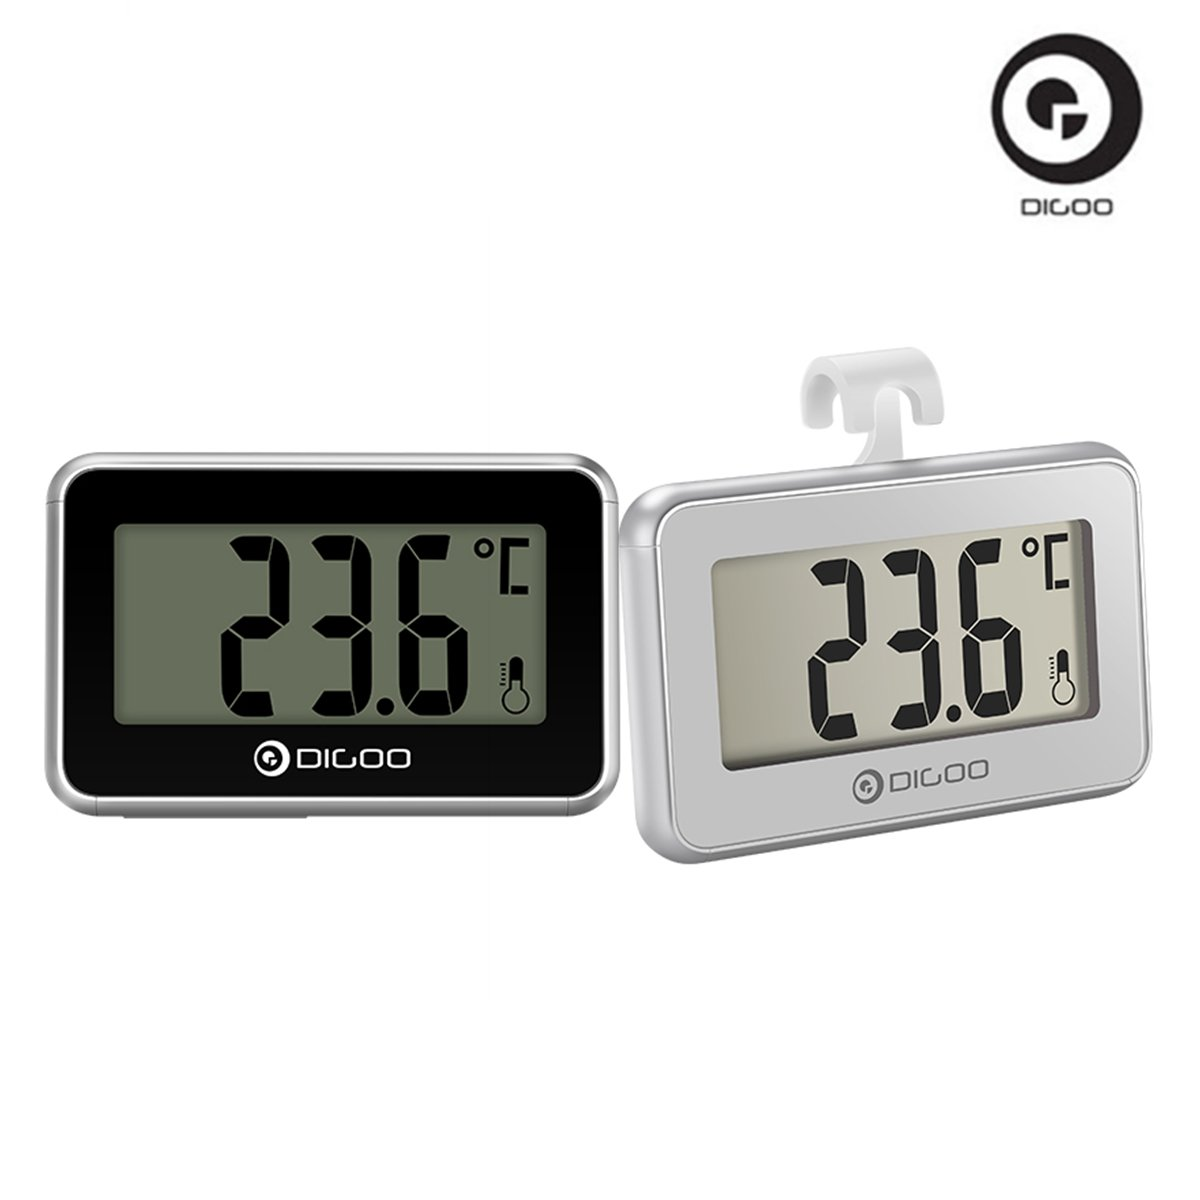 DIGOO 2PCS Mini Fridge Thermometer, Digital Waterproof Freezer Thermometer, with Multi-function Hook, LCD Display, for Home Restaurant Bar Cafe Indoor and Outdoor, Black and Silver Viceirye DIGOOviceiryefr166